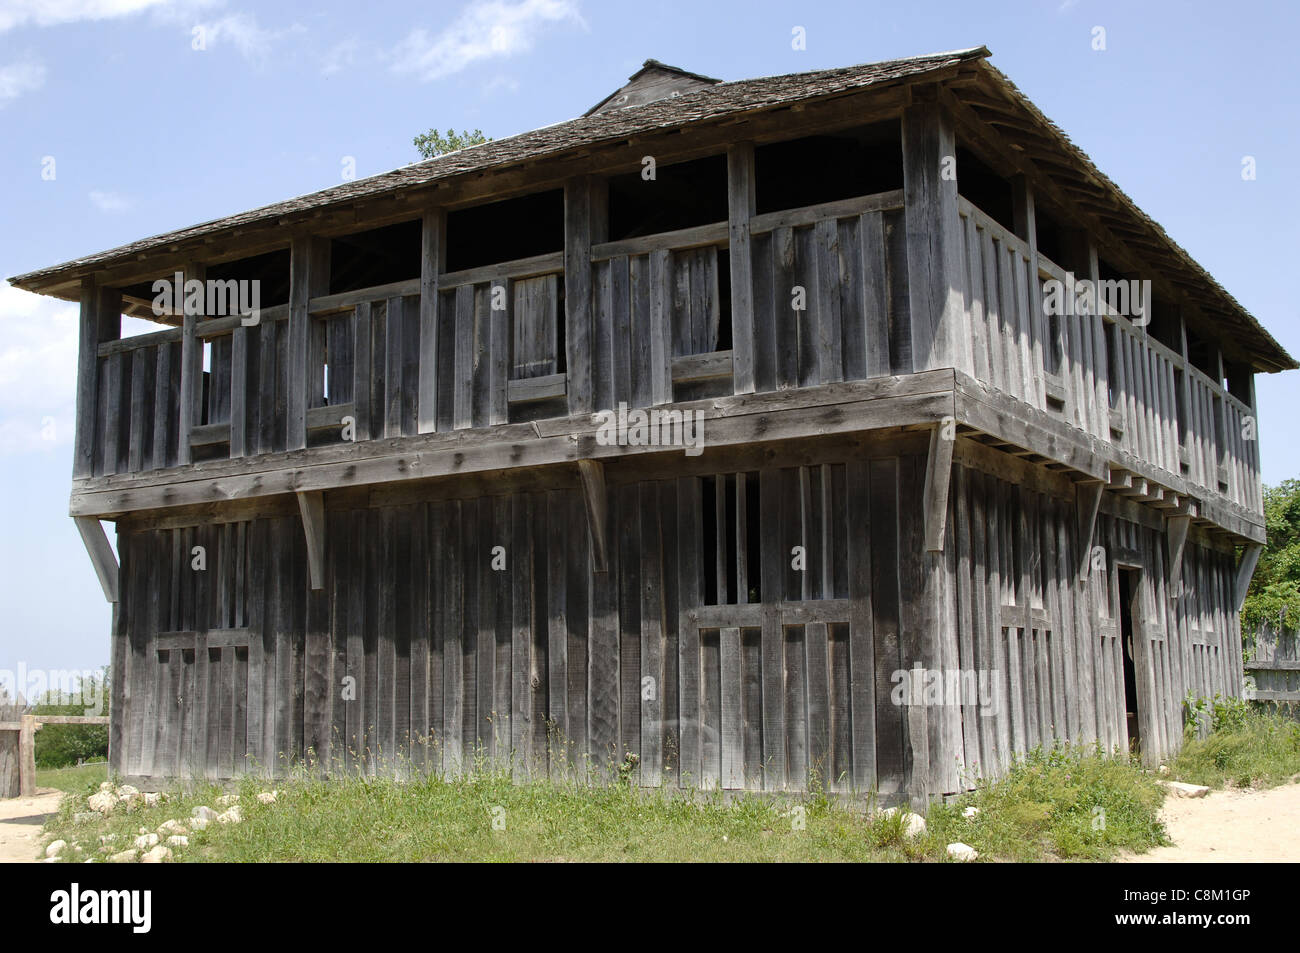 Plimoth Plantation or Historical Museum. The Fort or ...